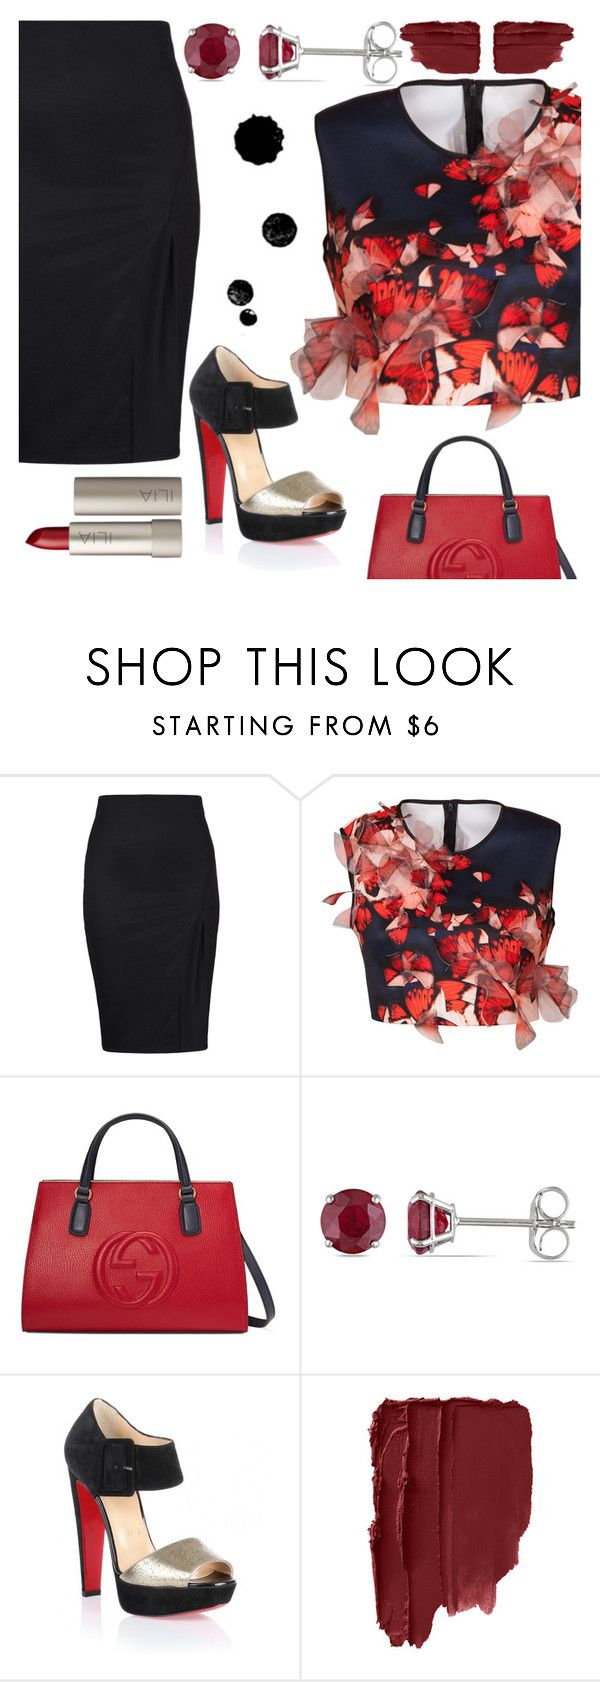 """Untitled #150"" by panaitteo ❤ liked on Polyvore featuring Clover Canyon, Gucci, Allurez, Christian Louboutin and Ilia"